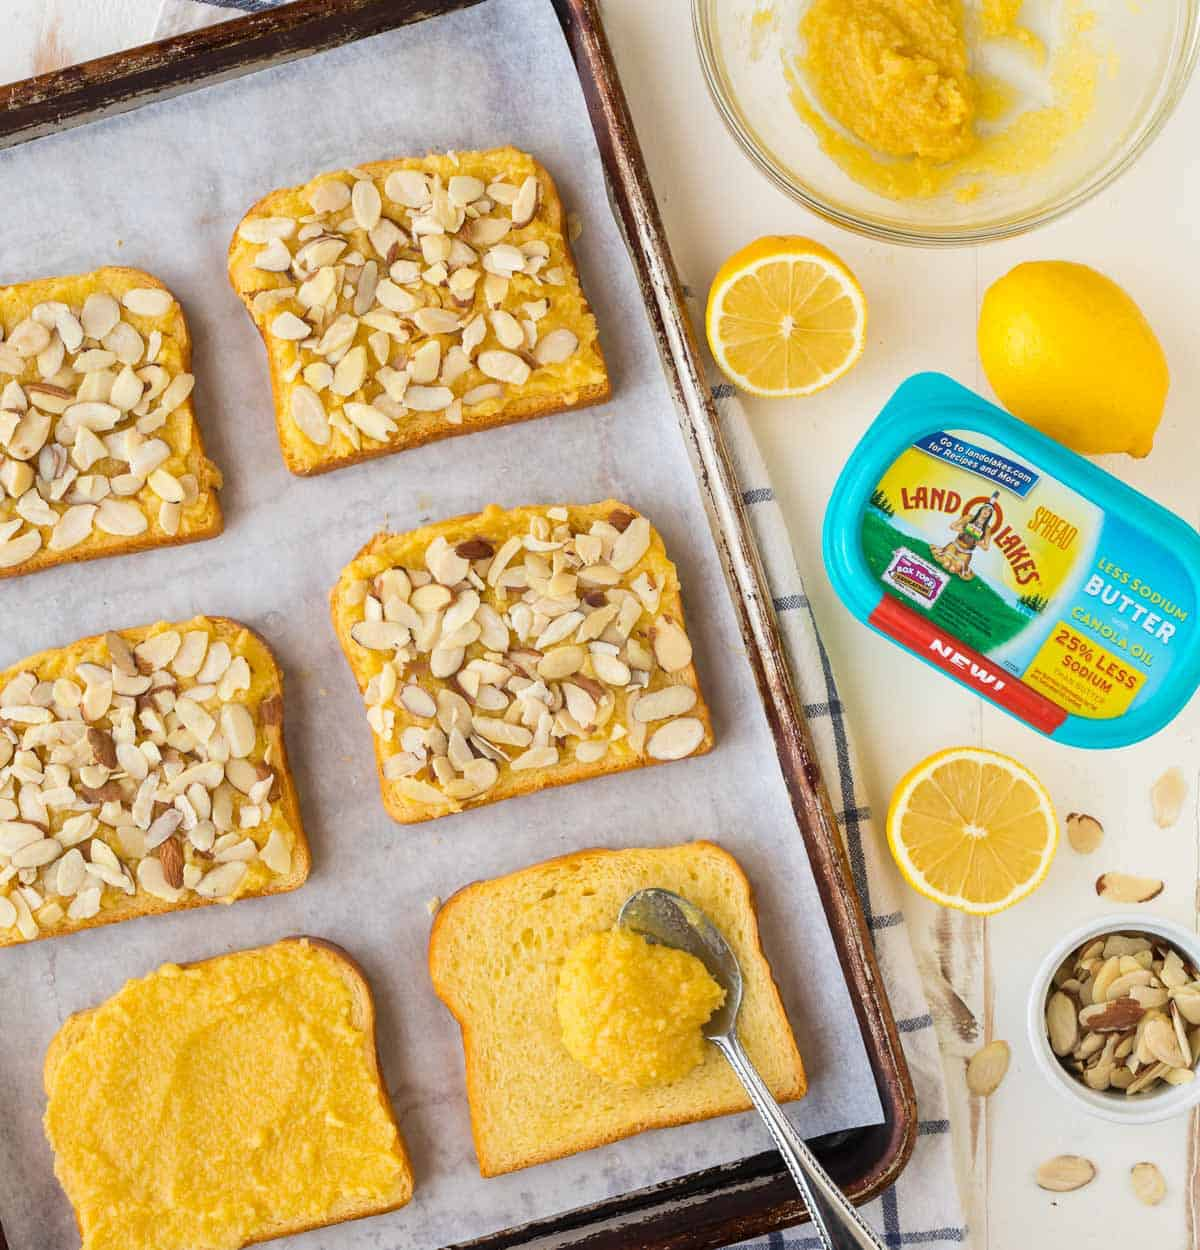 Bostock is topped with sliced almonds for a delicious brunch recipe and treat.